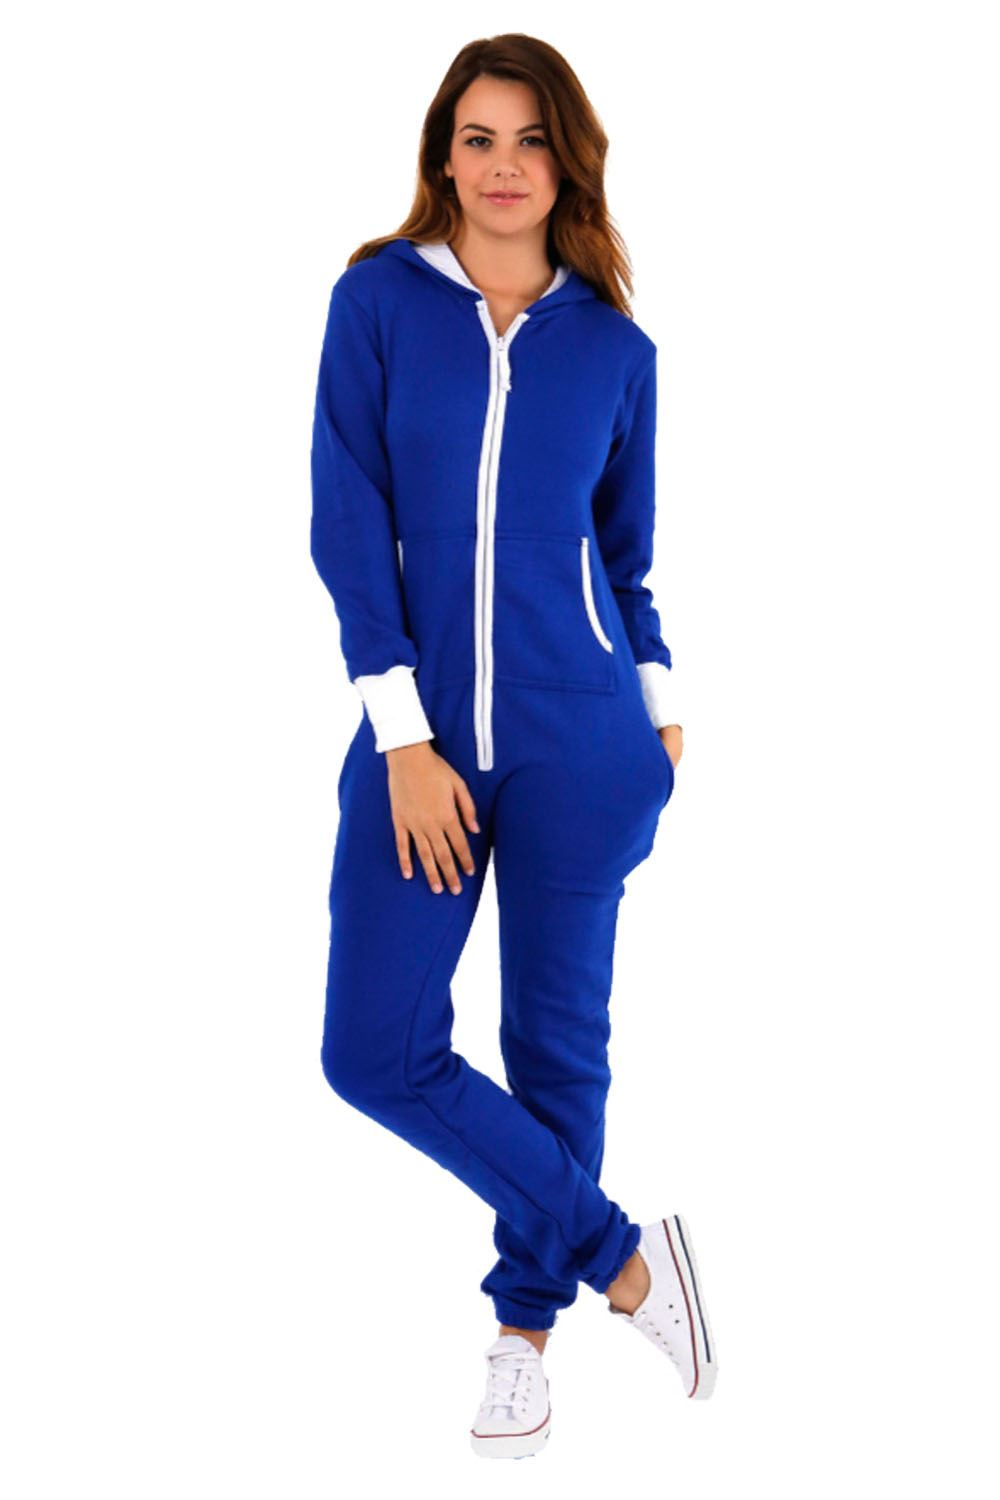 From beach-ready, tropical-print strapless rompers for vacations to pant-length chevron-print jumpsuits in wear-to-work styles, you can find a wide selection of women's jumpsuits at chaplin-favor.tk in many styles, brands, colors, patterns, and sizes.